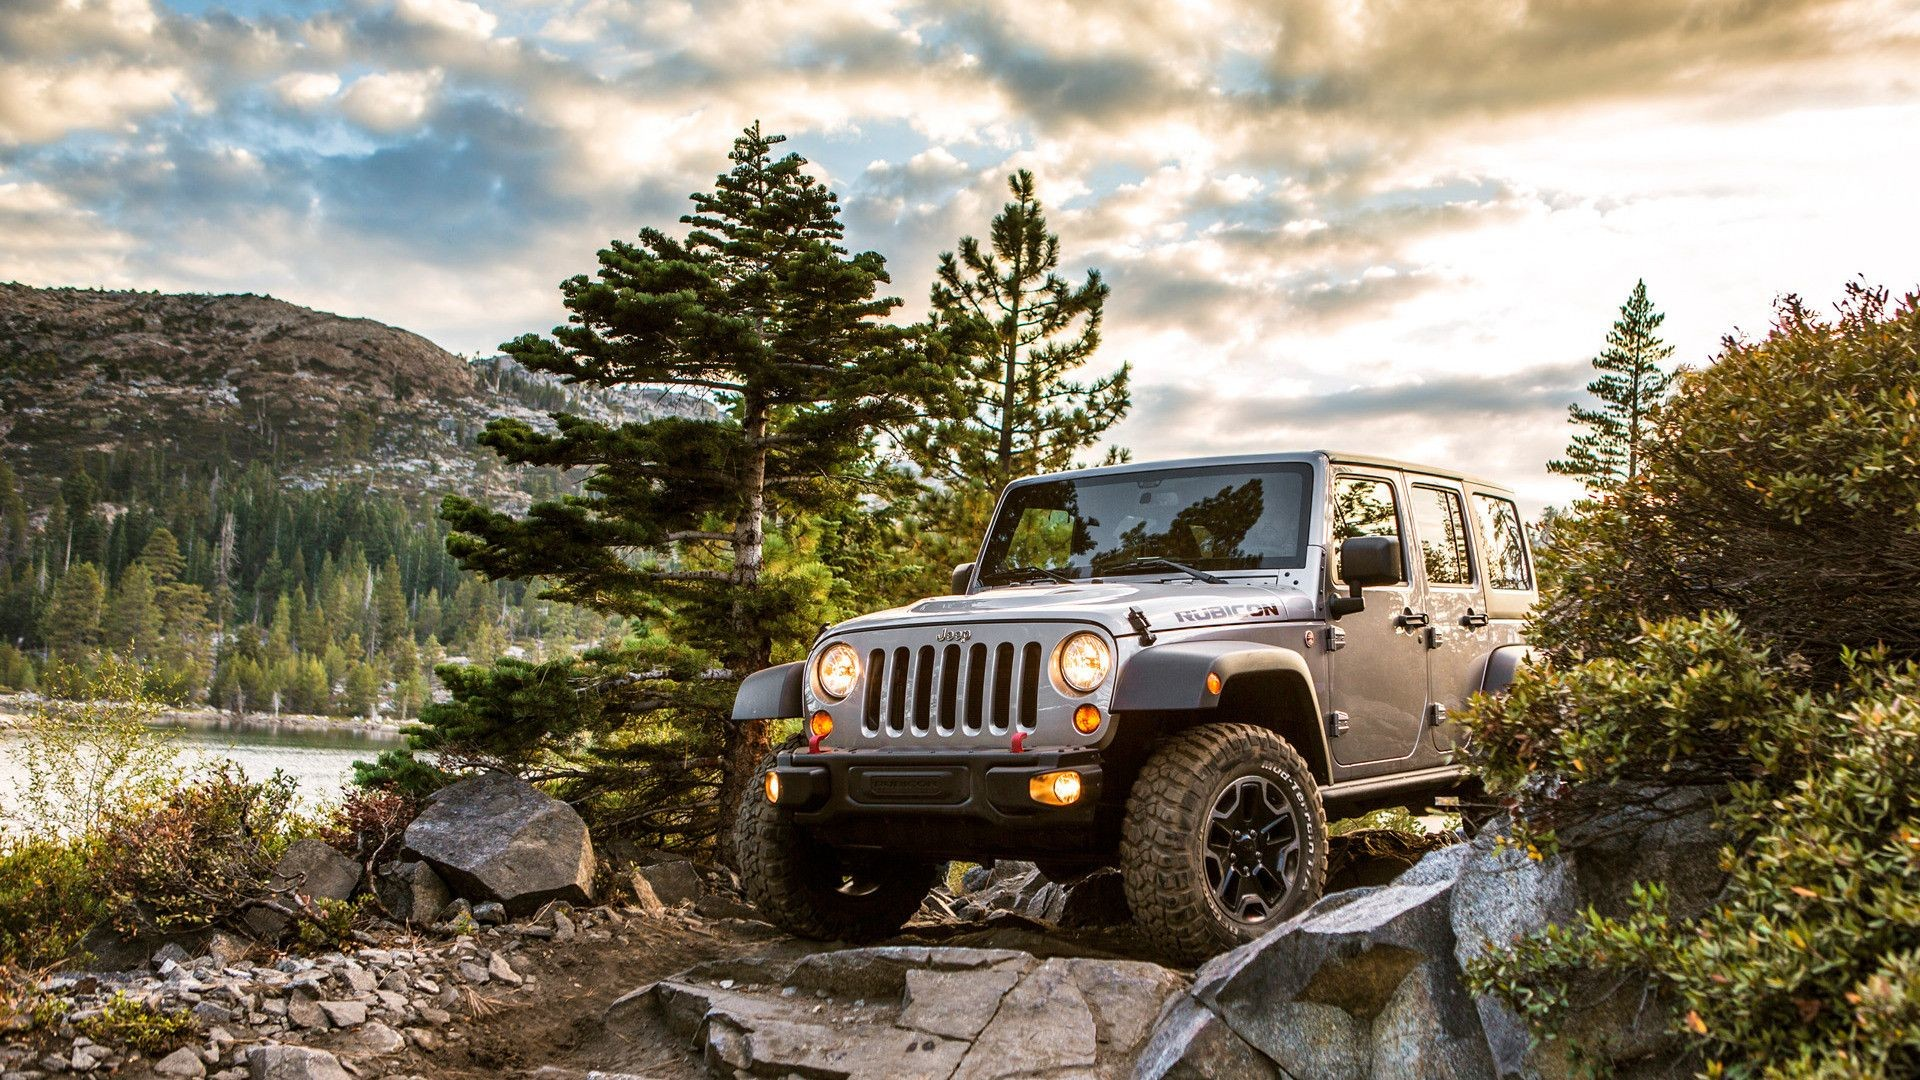 Jeep Wrangler Wallpapers – Wallpaper Cave